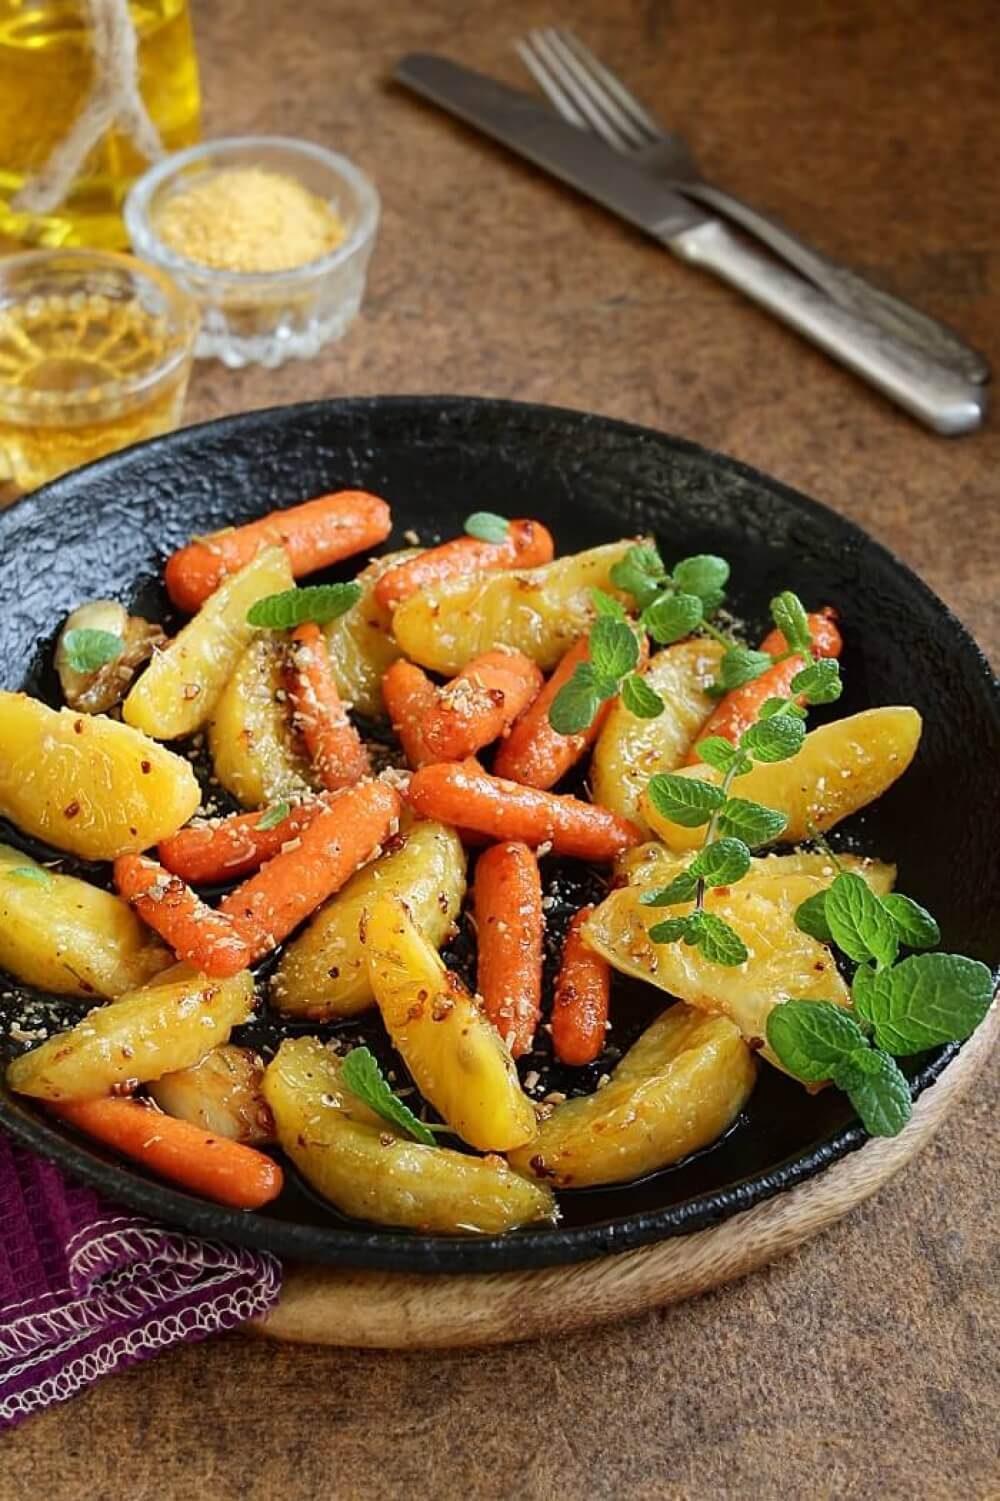 Roasted Carrots with Orange